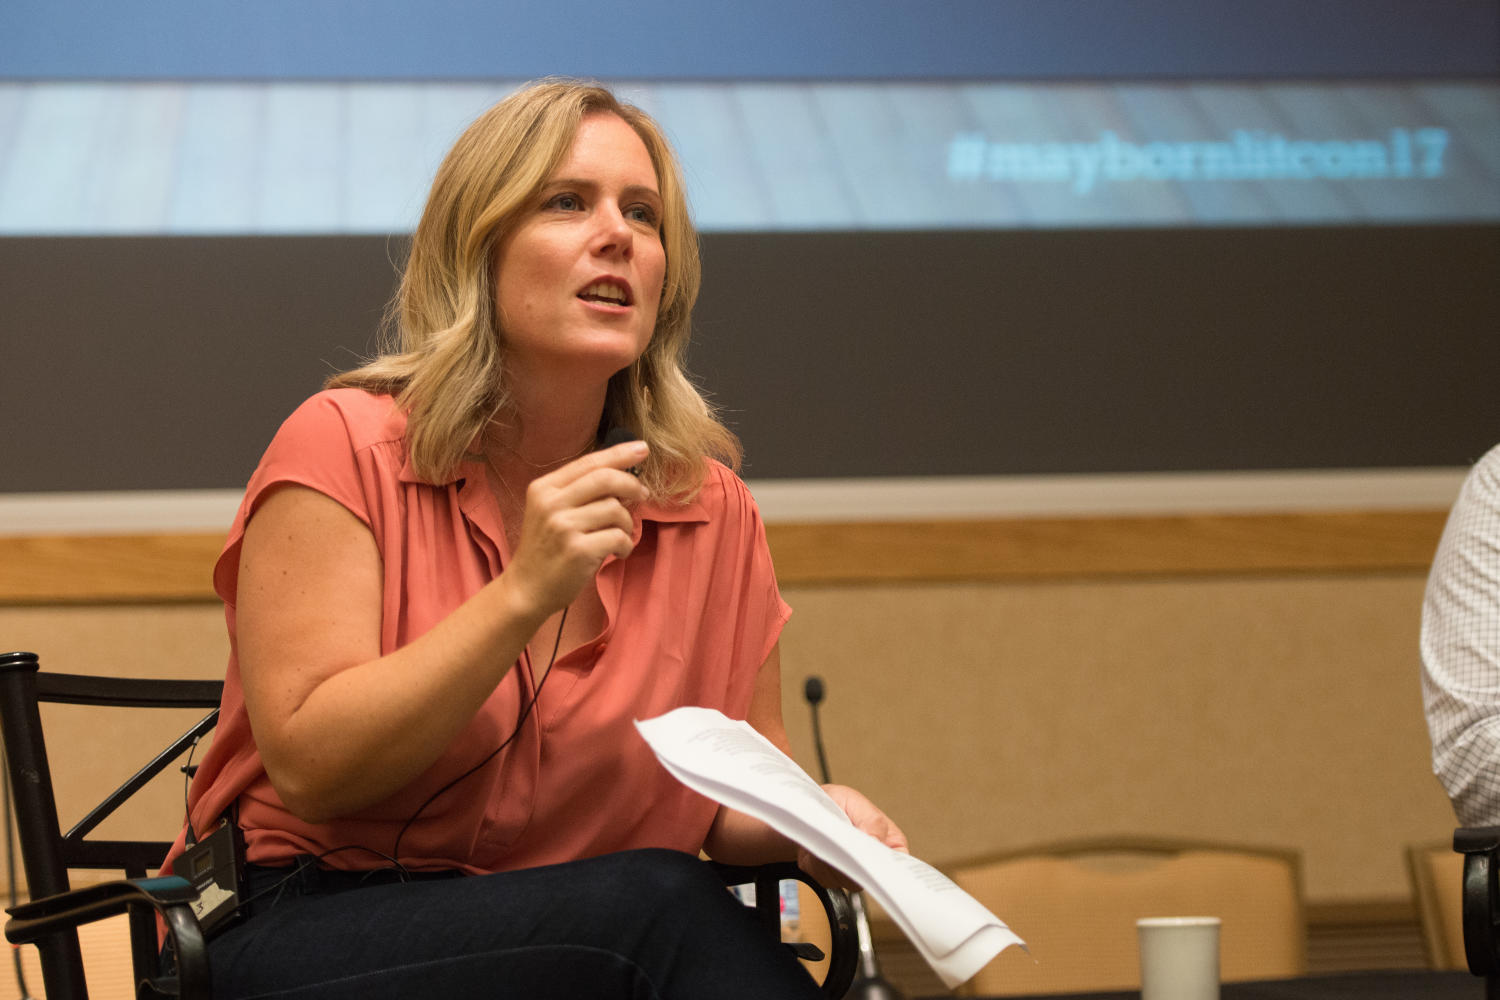 """[Sarah Hepola speaking on """"Personal Perspective or Navel Gazing?"""" panel], Photograph of Sarah Hepola, author of """"Blackout: Remembering the Things I Drank to Forget"""" and essays published in several magazines, speaking to the audience during the """"Personal Perspective or Navel Gazing?"""" panel. The event was held during the 2017 Mayborn Literary Nonfiction Conference at the Hilton DFW Lakes Executive Conference Center in Grapevine, TX.,"""